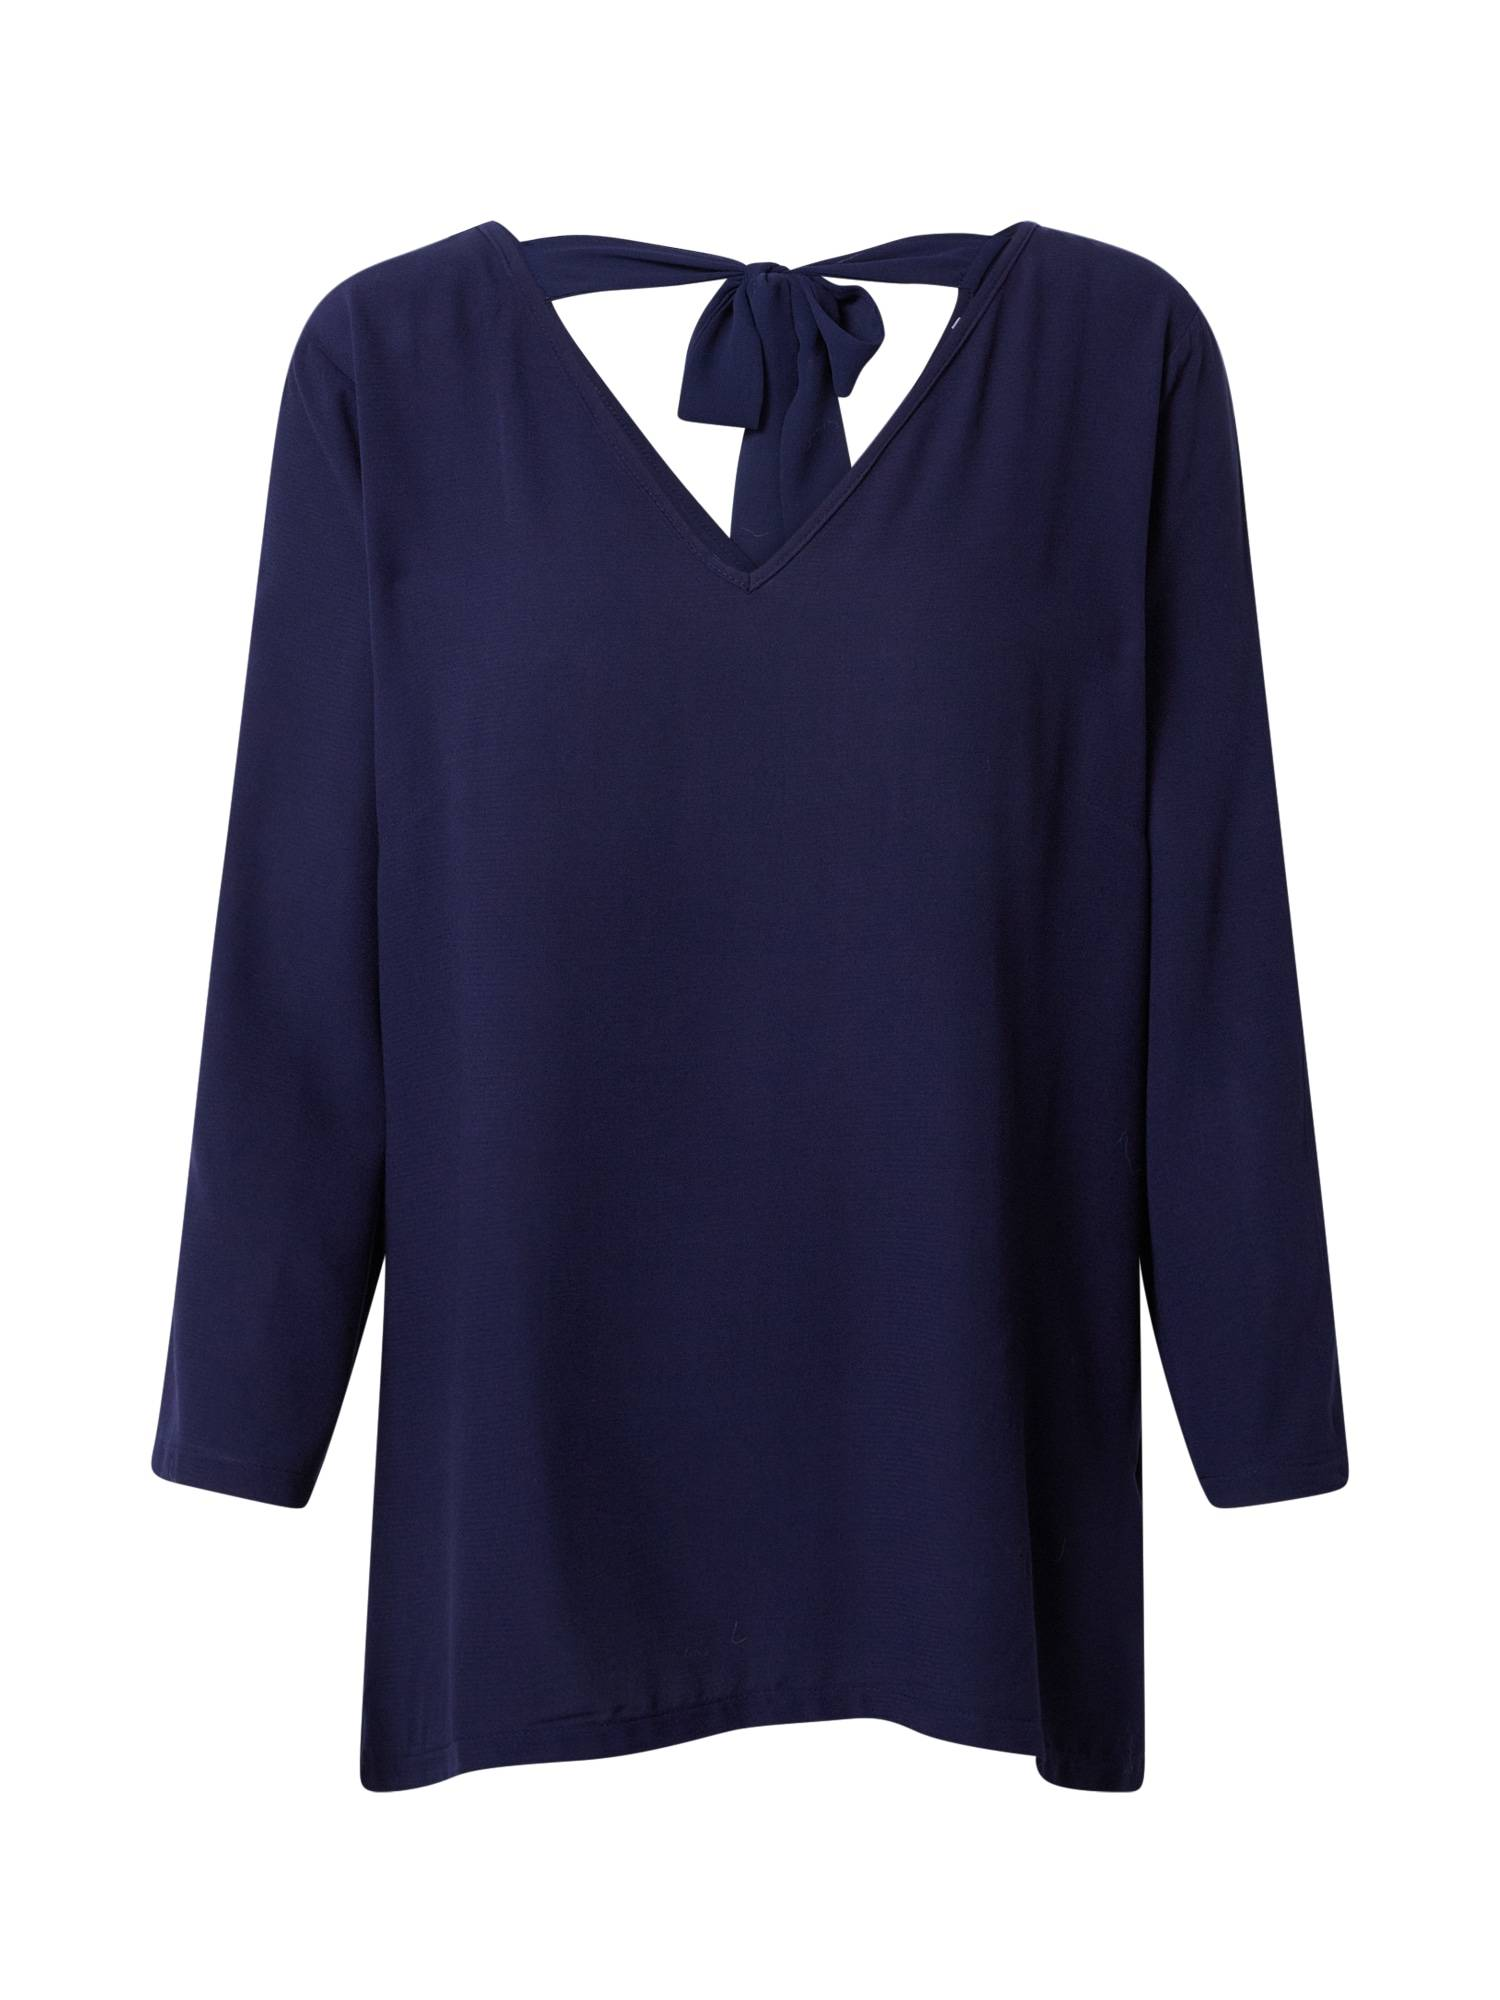 ABOUT YOU Chemisier 'Farine Blouse'  - Bleu - Taille: 38 - female